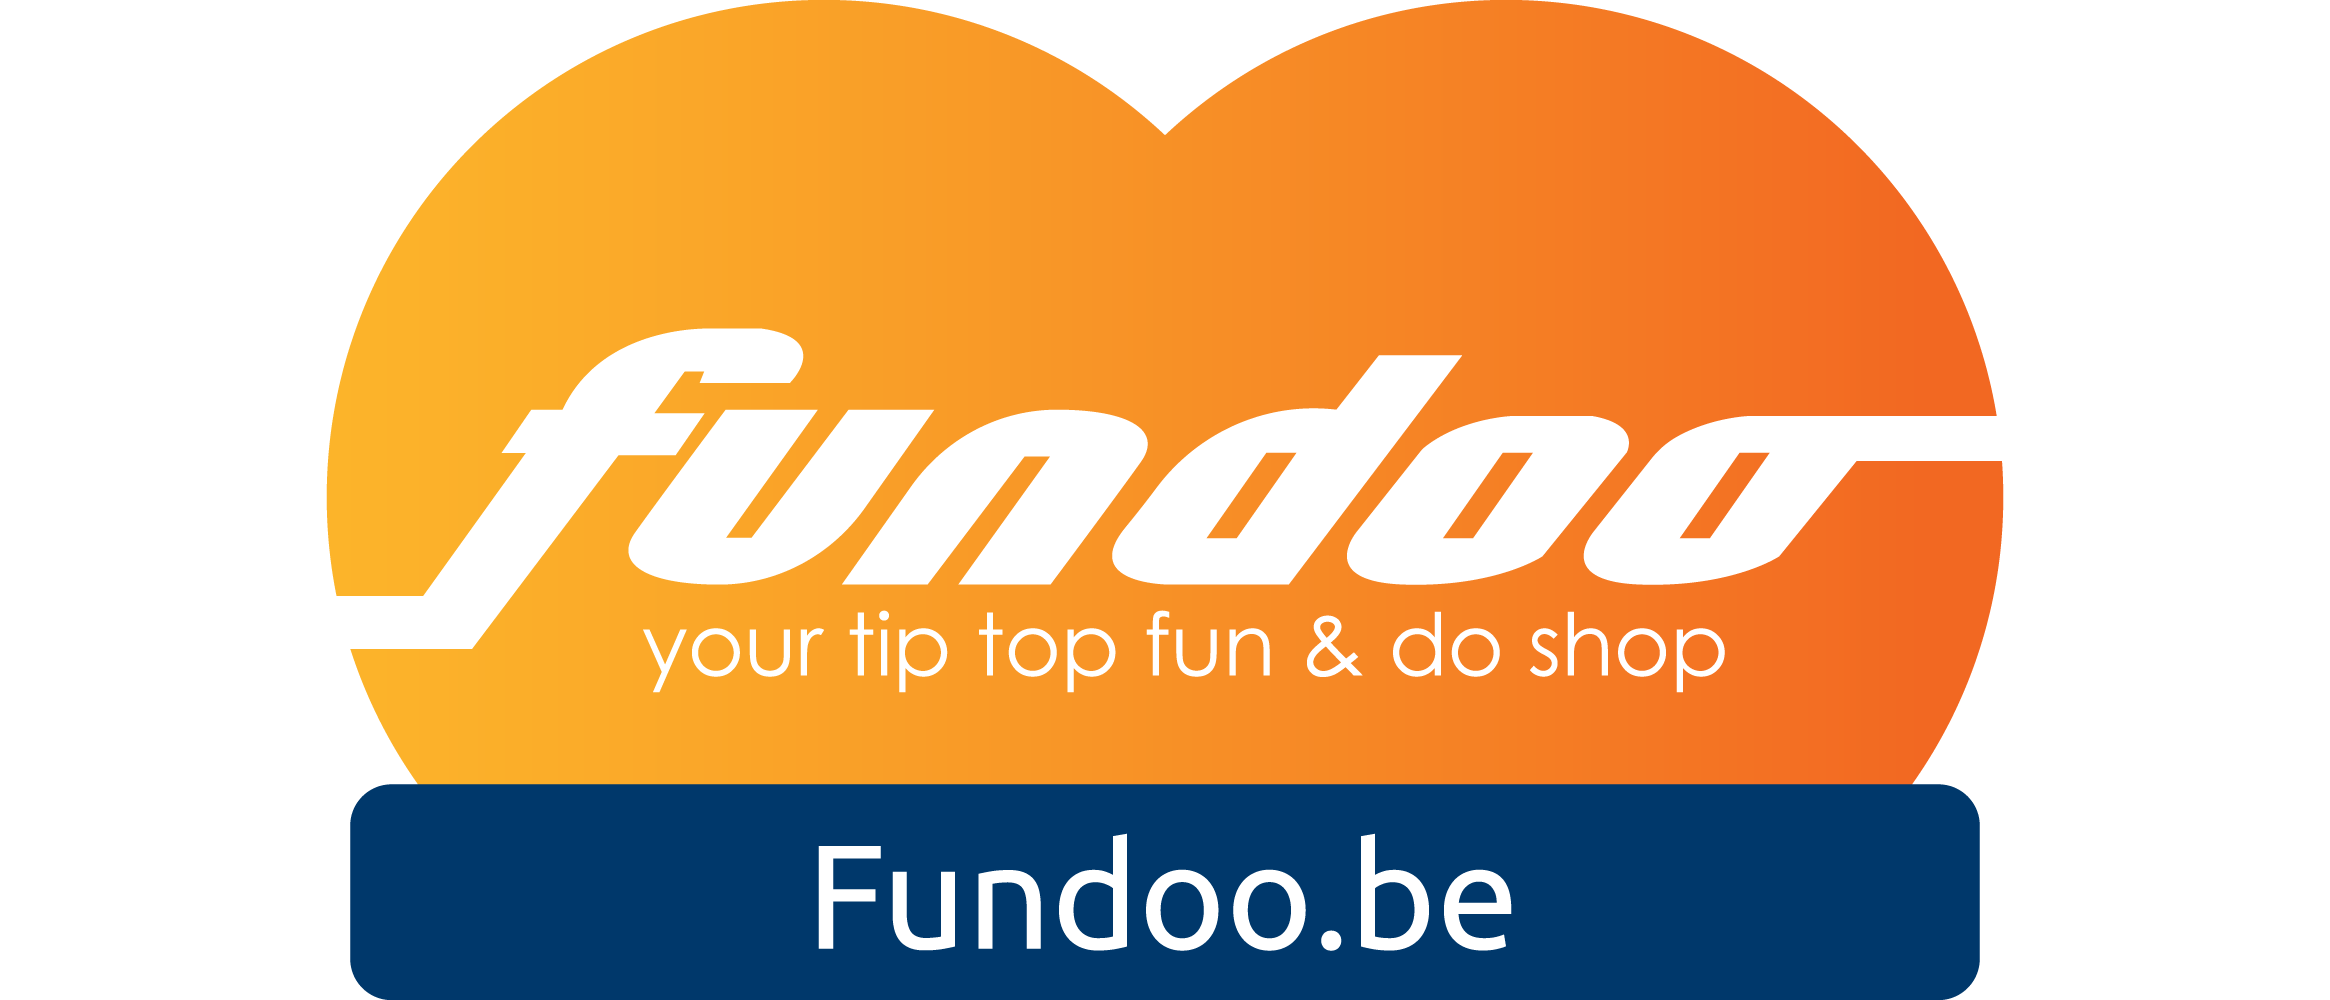 Fundoo.be